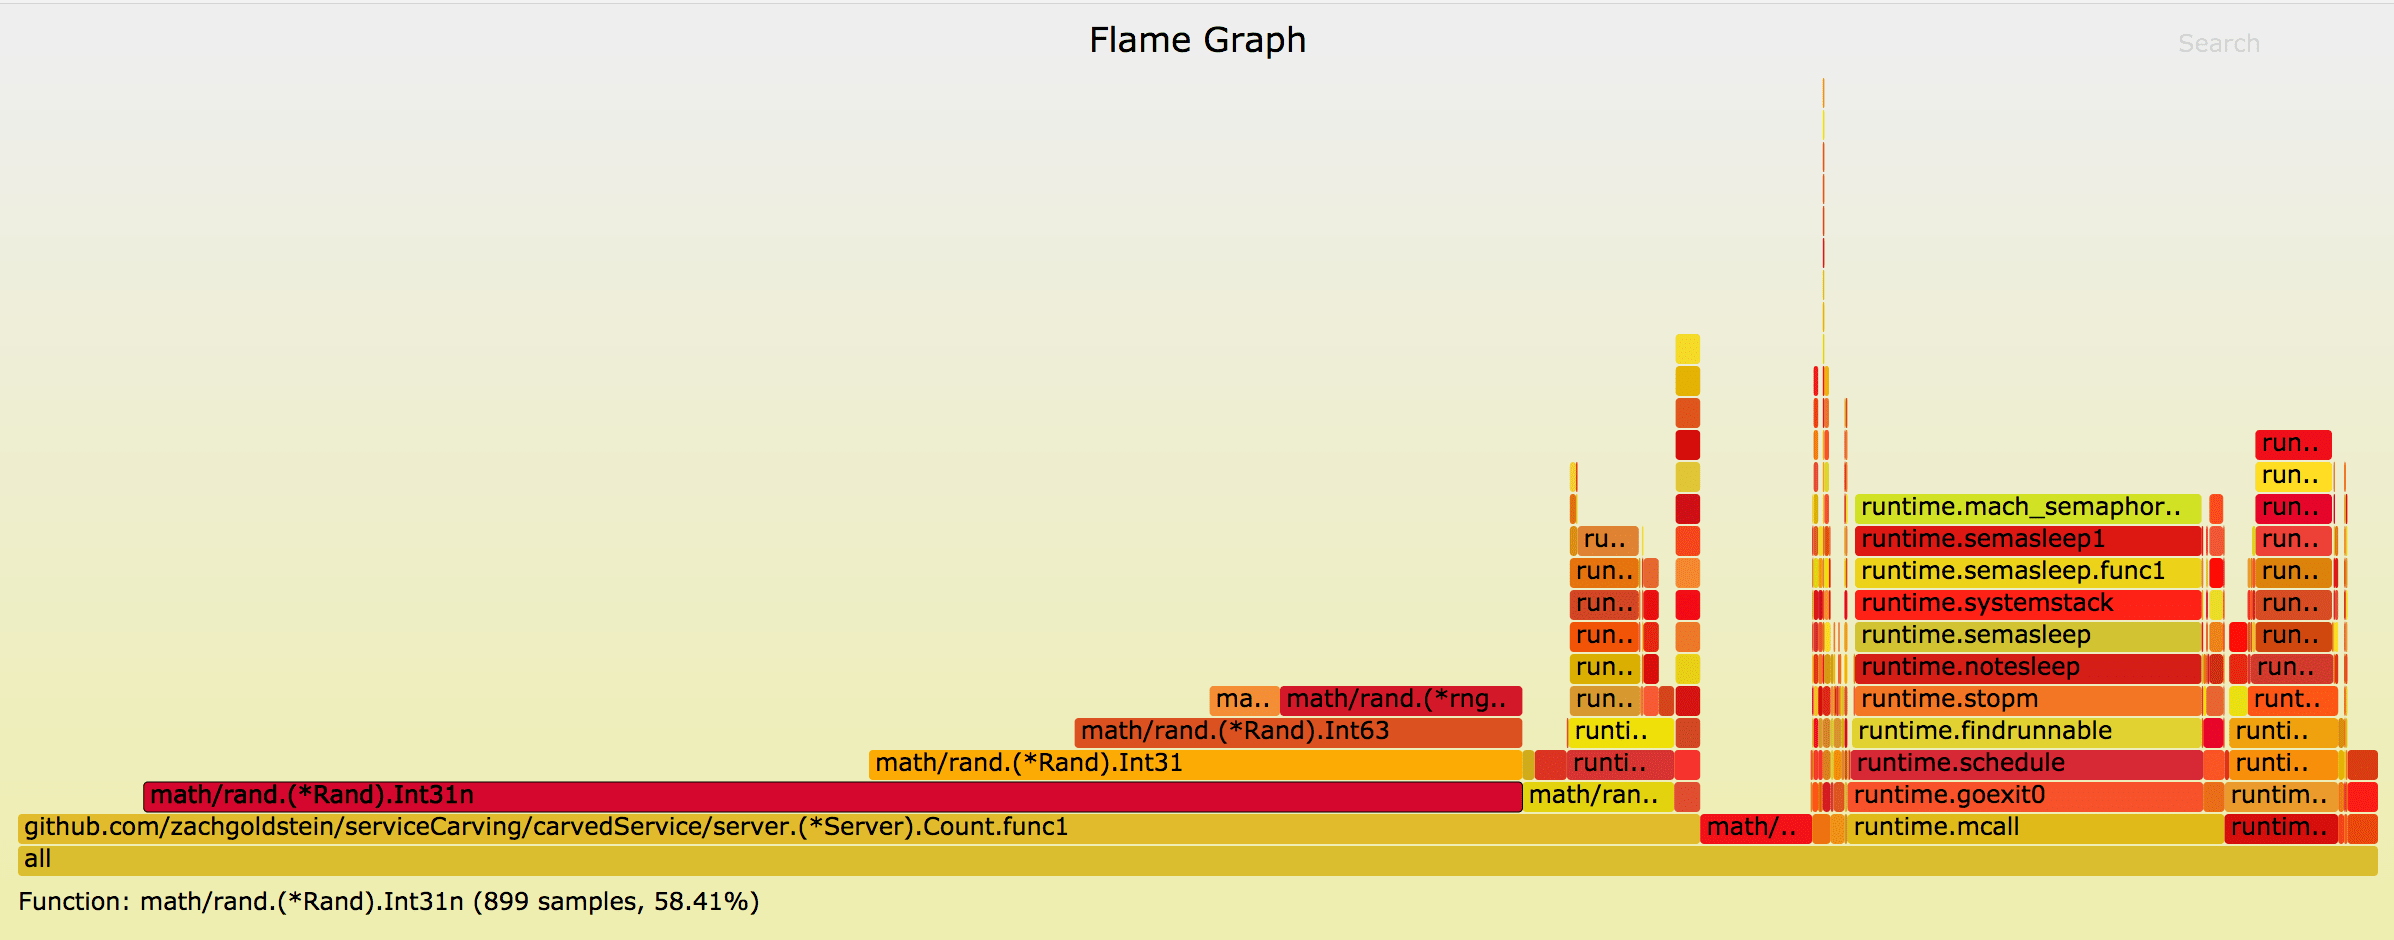 go-torch Flame Graph